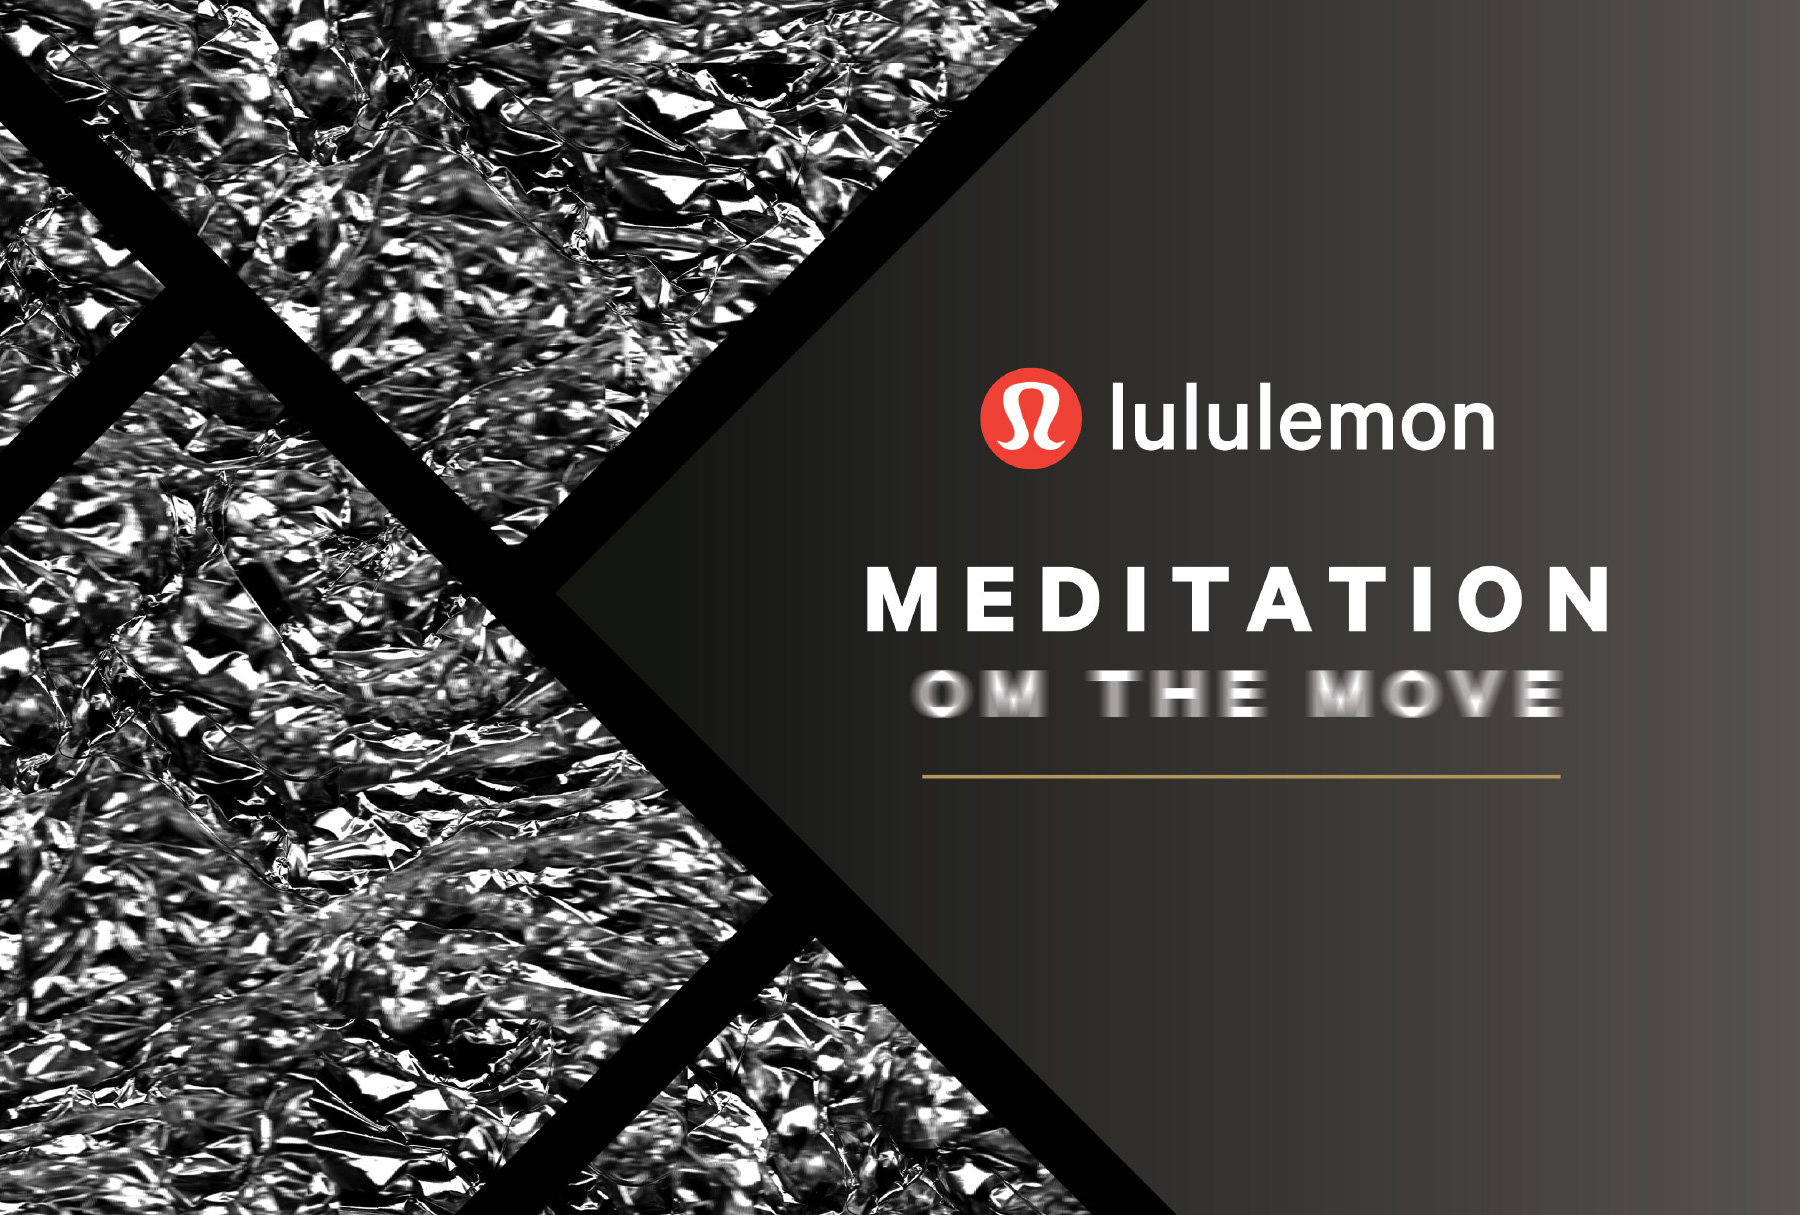 'Lululemon' logo and 'MEDITATION OM THE MOVE' text in white on black and silver texture for brand identity and livery